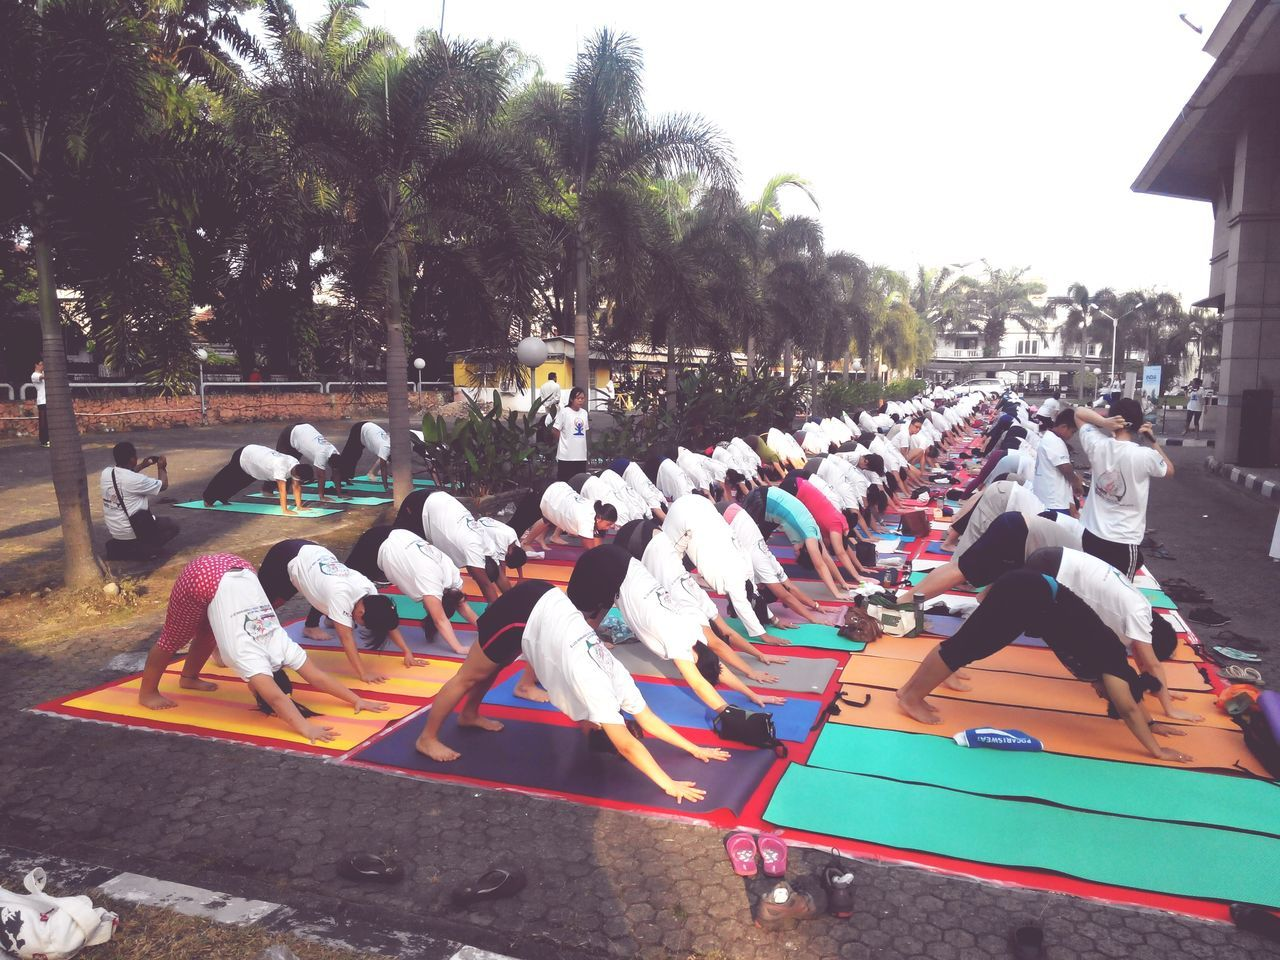 Internationalyogaday Check This Out Taking Photos Relaxing Yoga